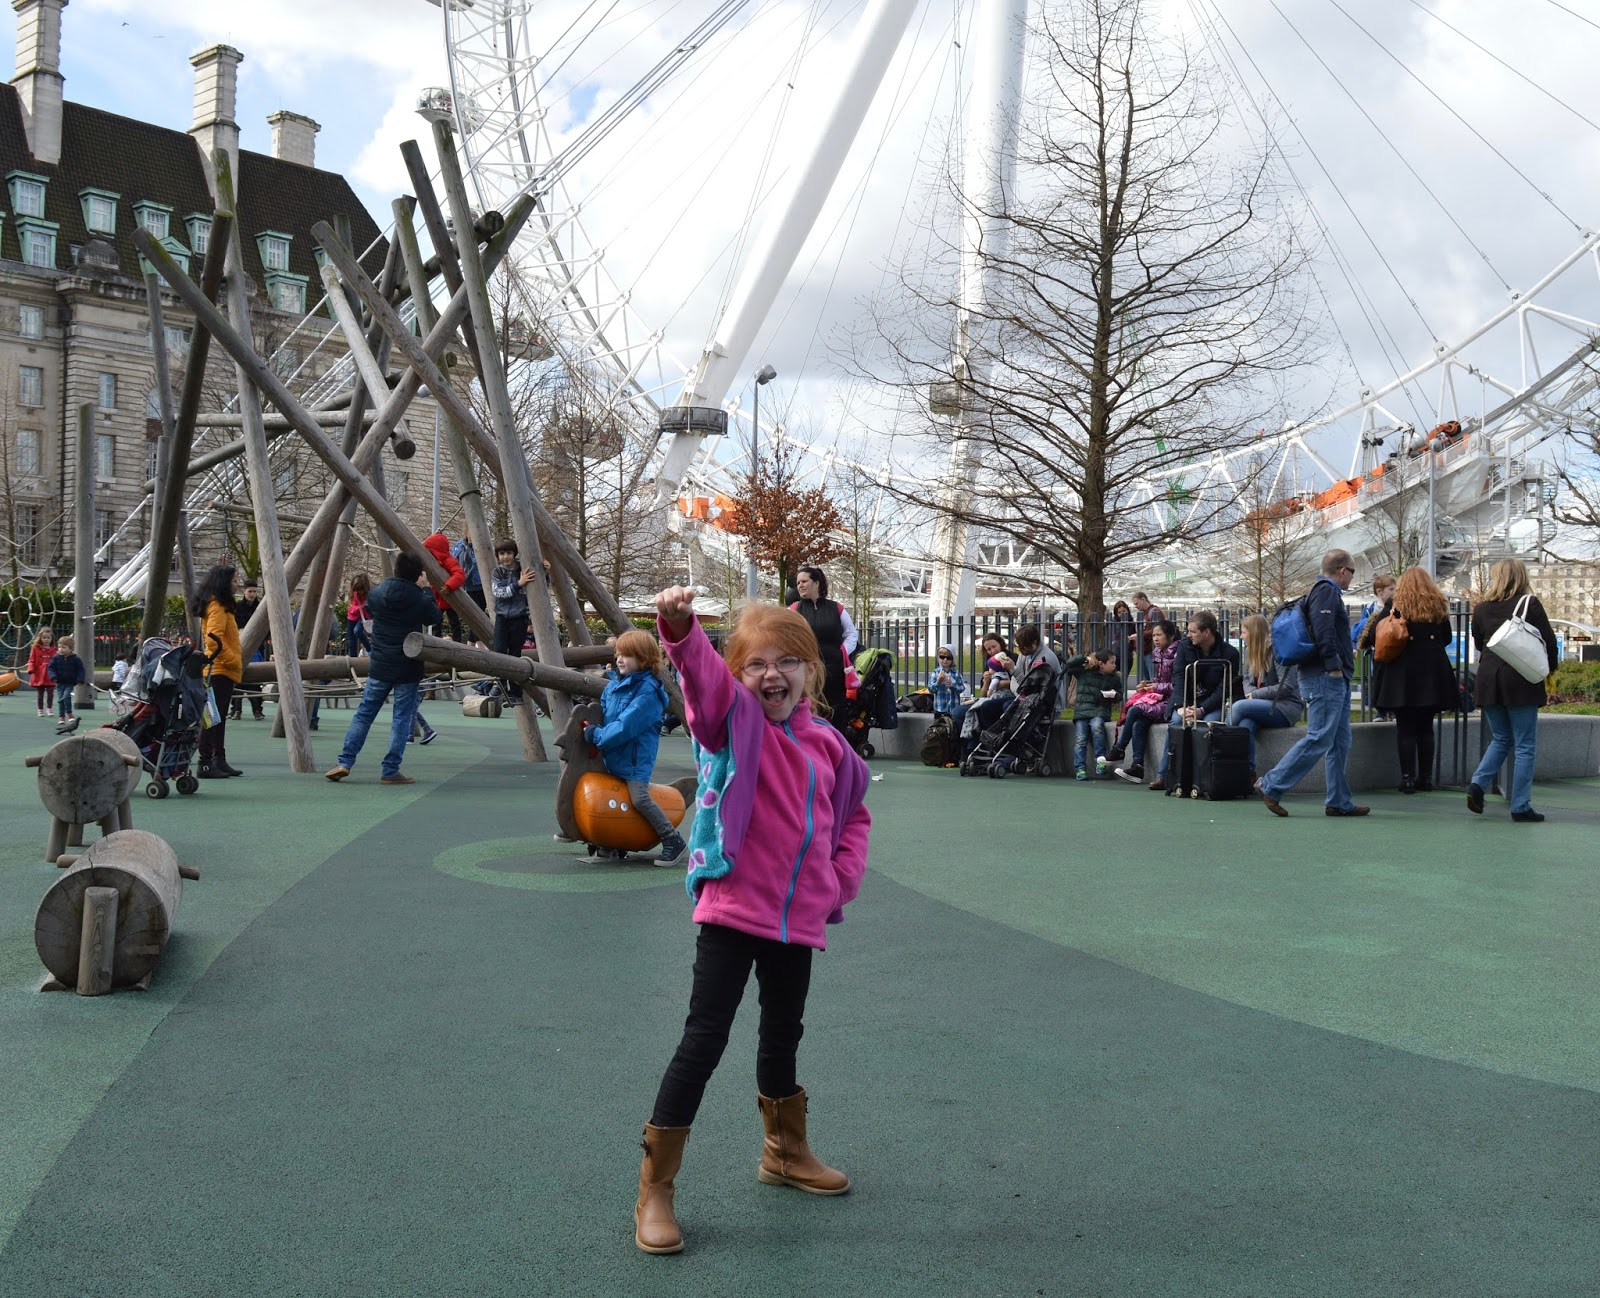 A family day trip to London with Virgin Trains East Coast - Jubilee Gardens playground at London Eye